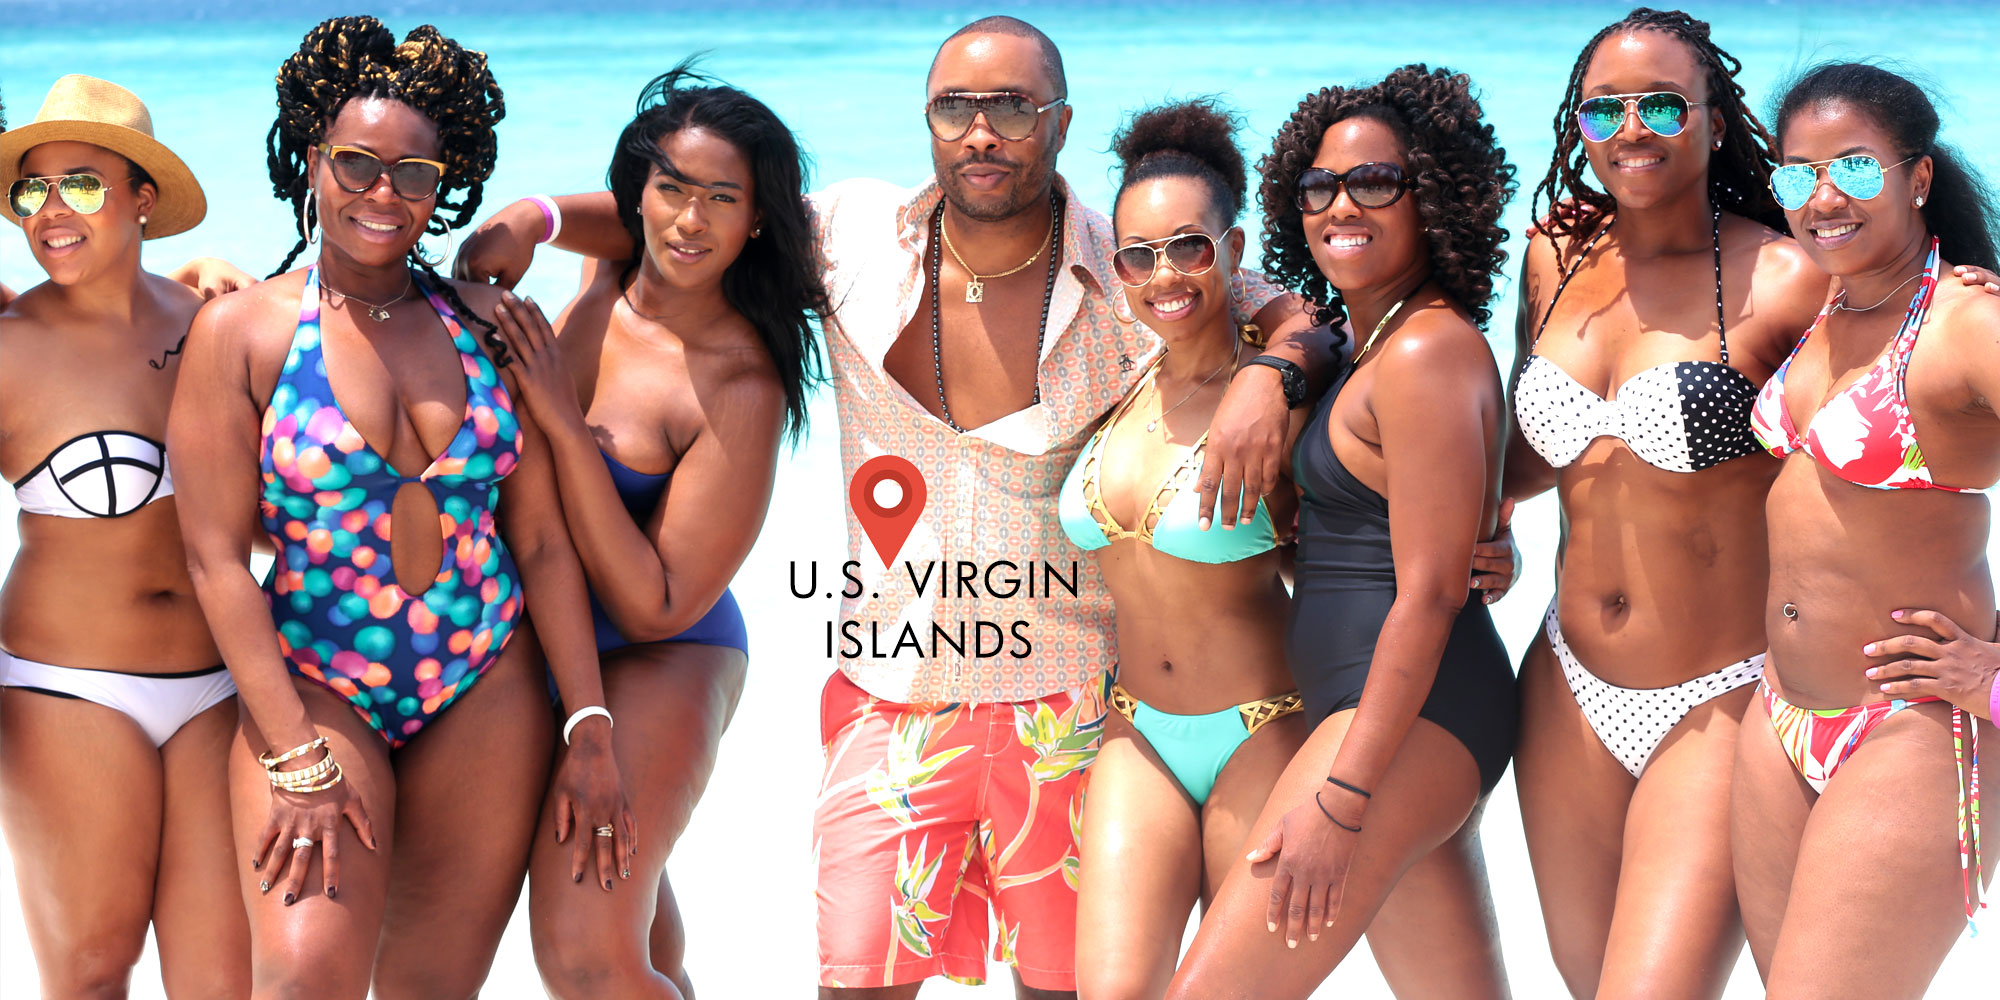 Omar-virgin-islands